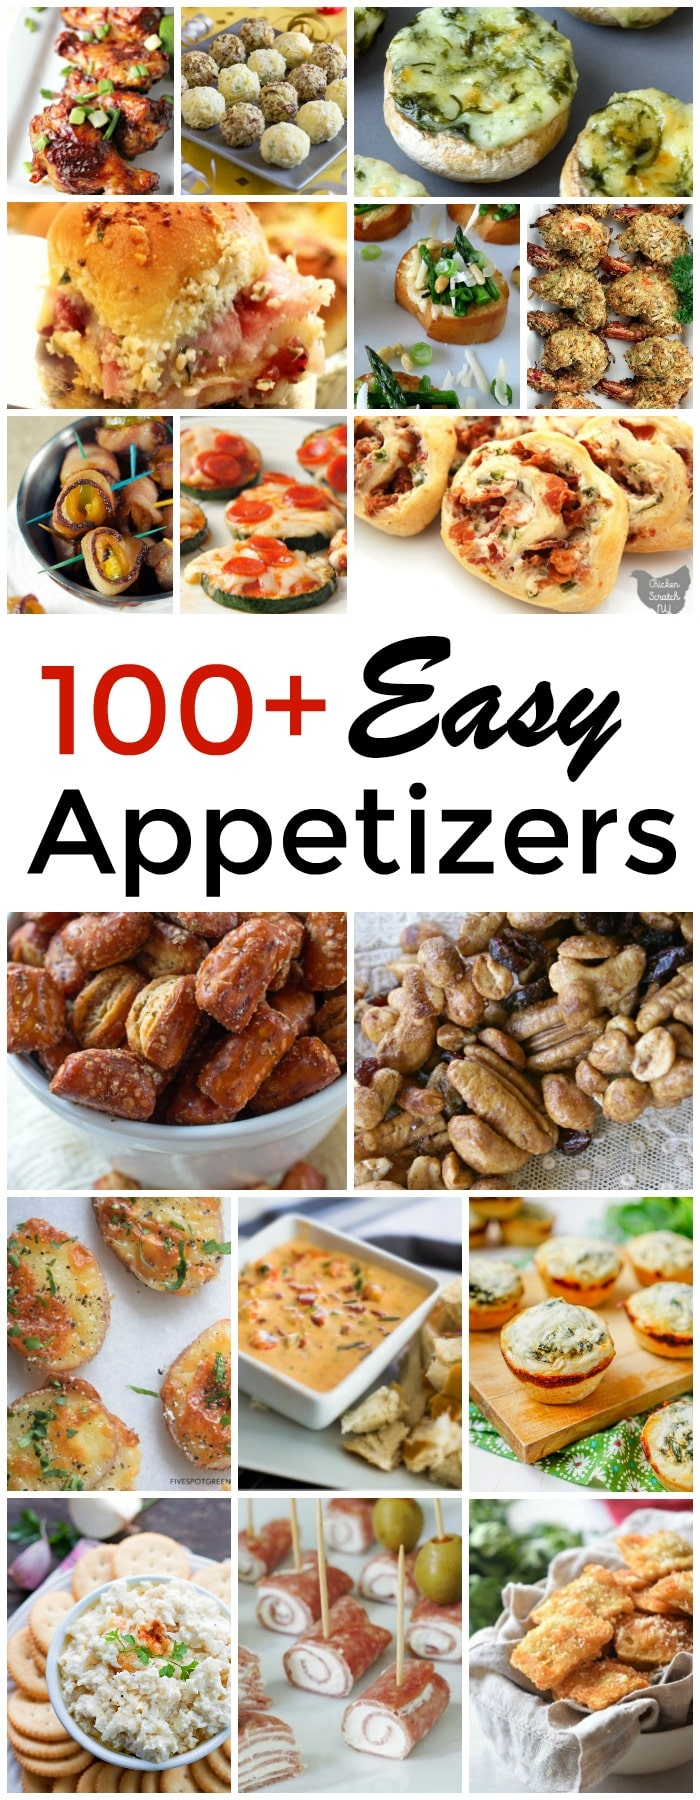 a collage of several pictures of different appetizers with title text reading 100+ Easy Appetizers